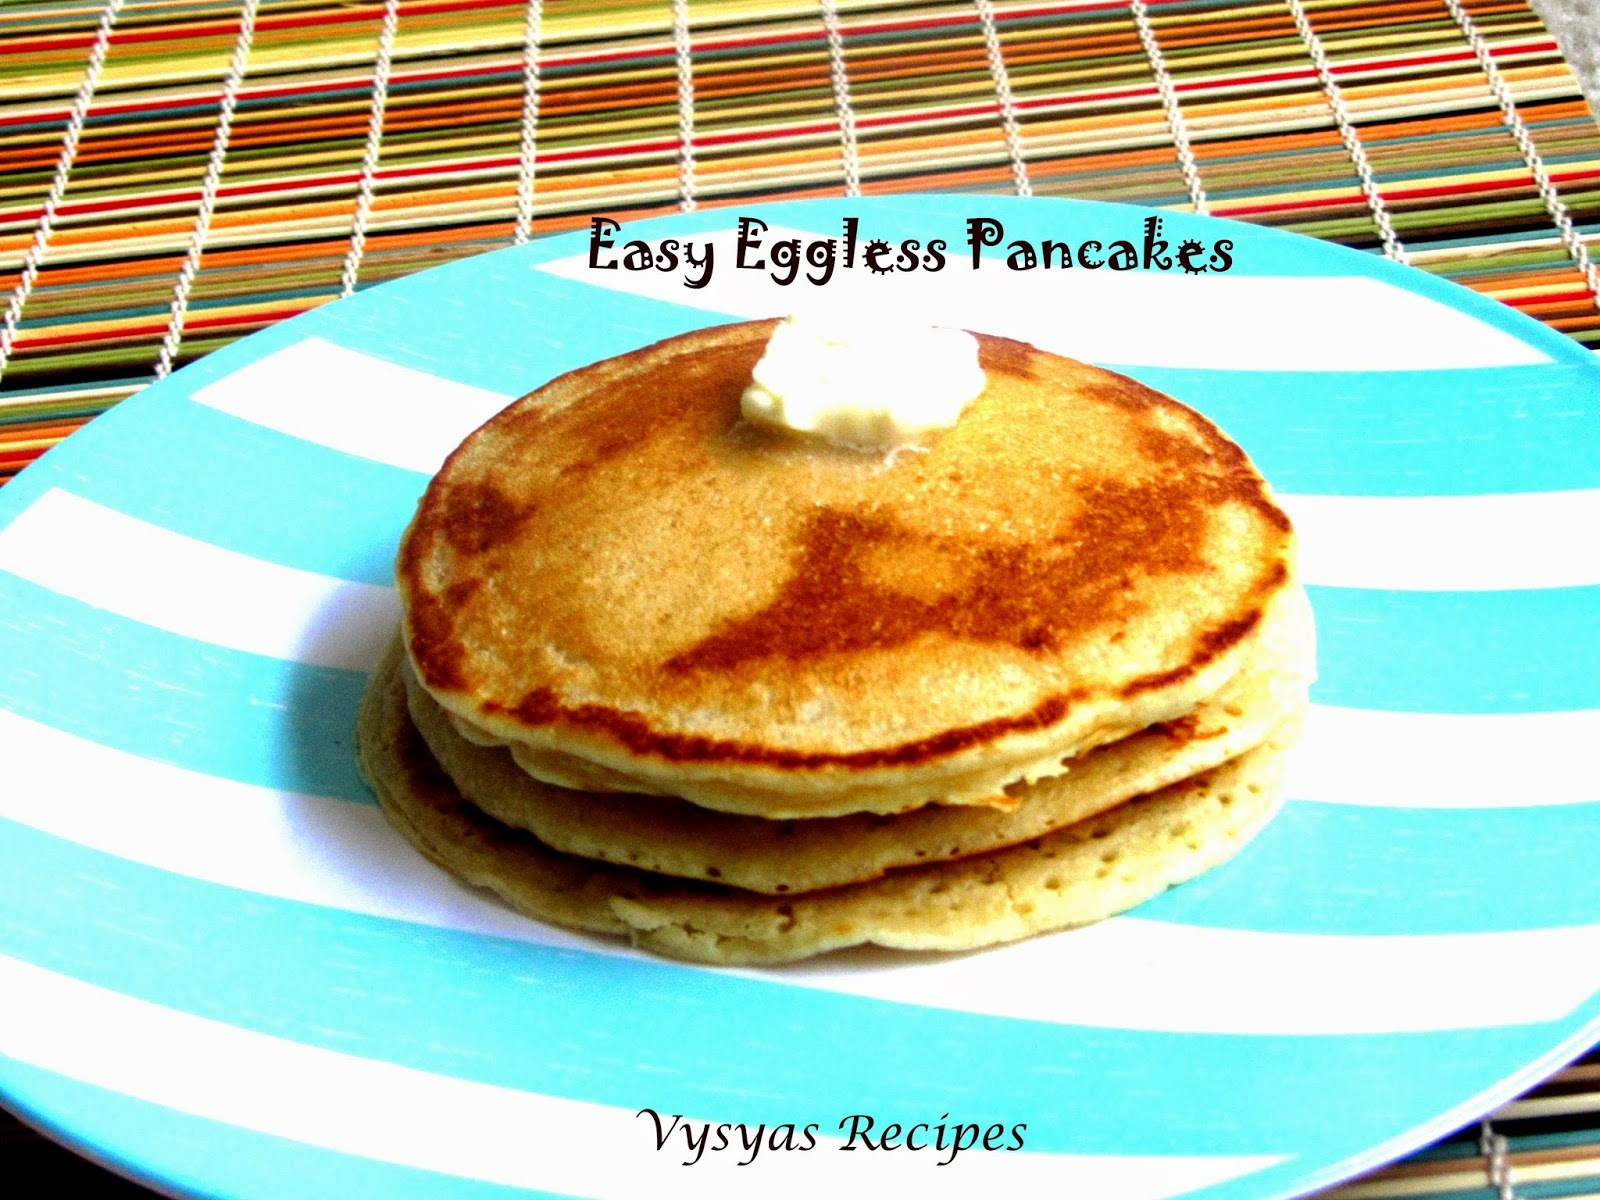 Eggless Pancake Recipe -  Easy Spongy  Fluffy  Pancakes  - With step wise Pictures